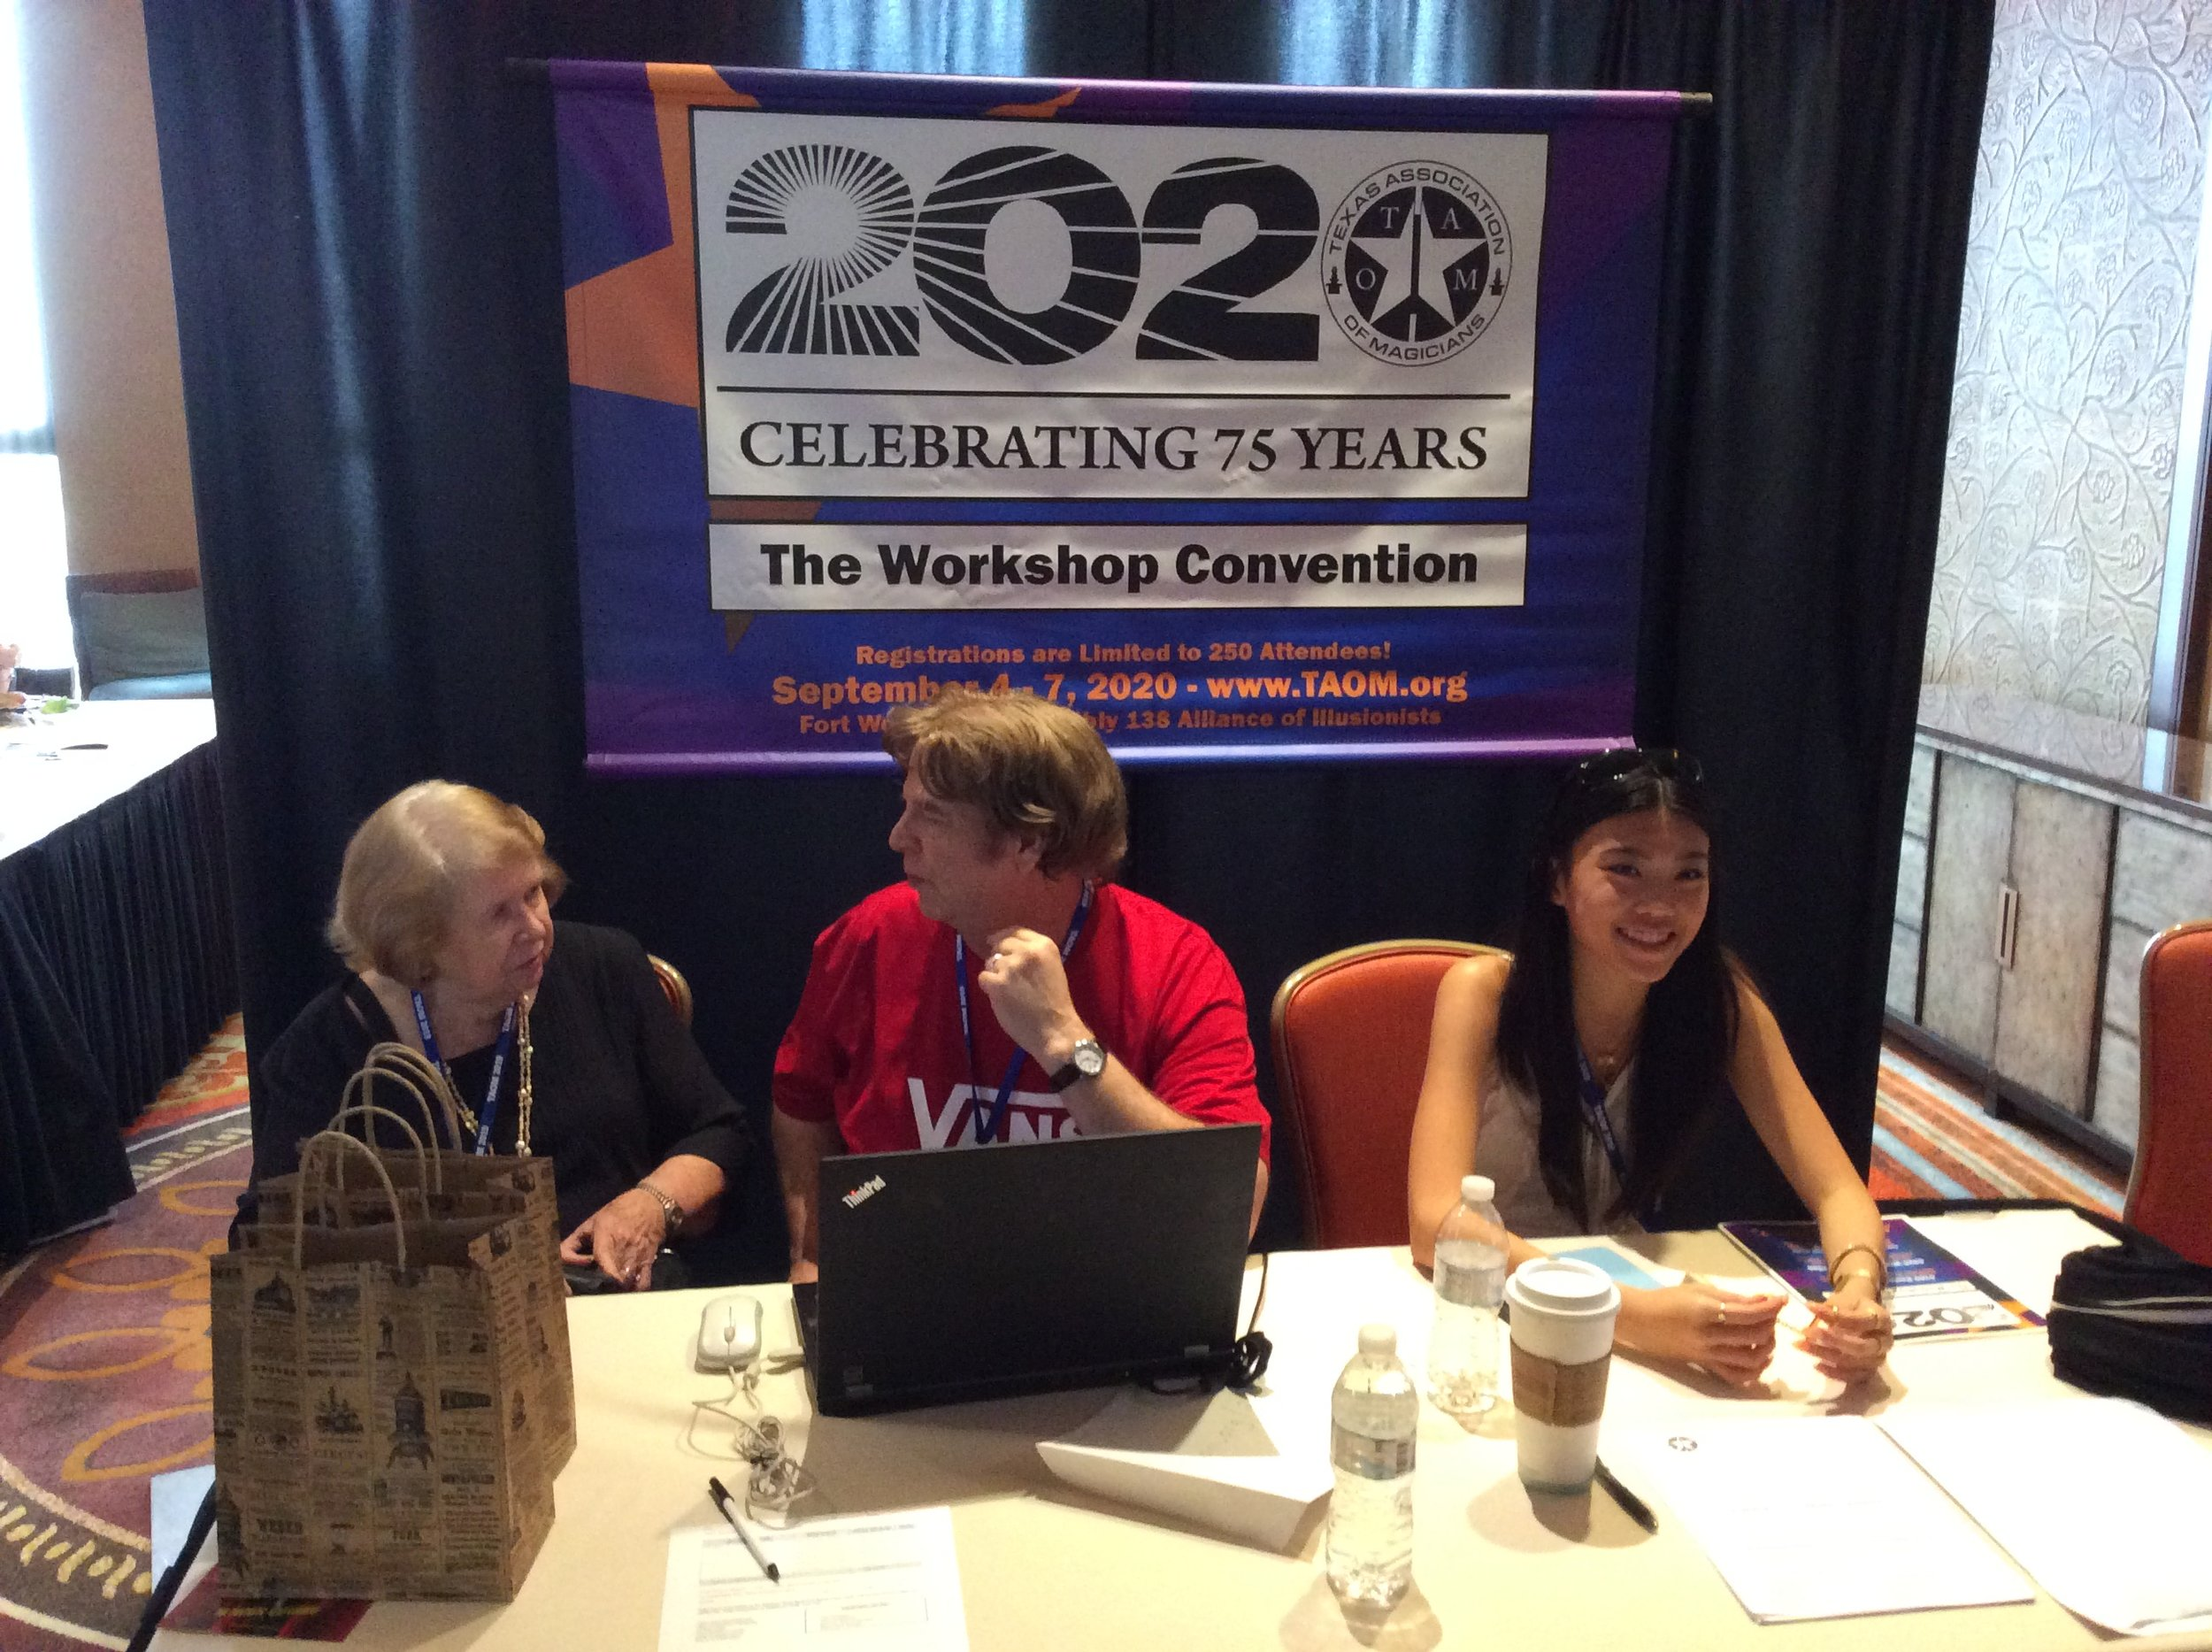 Registration for Ft. Worth 2020 T.A.O.M. Convention